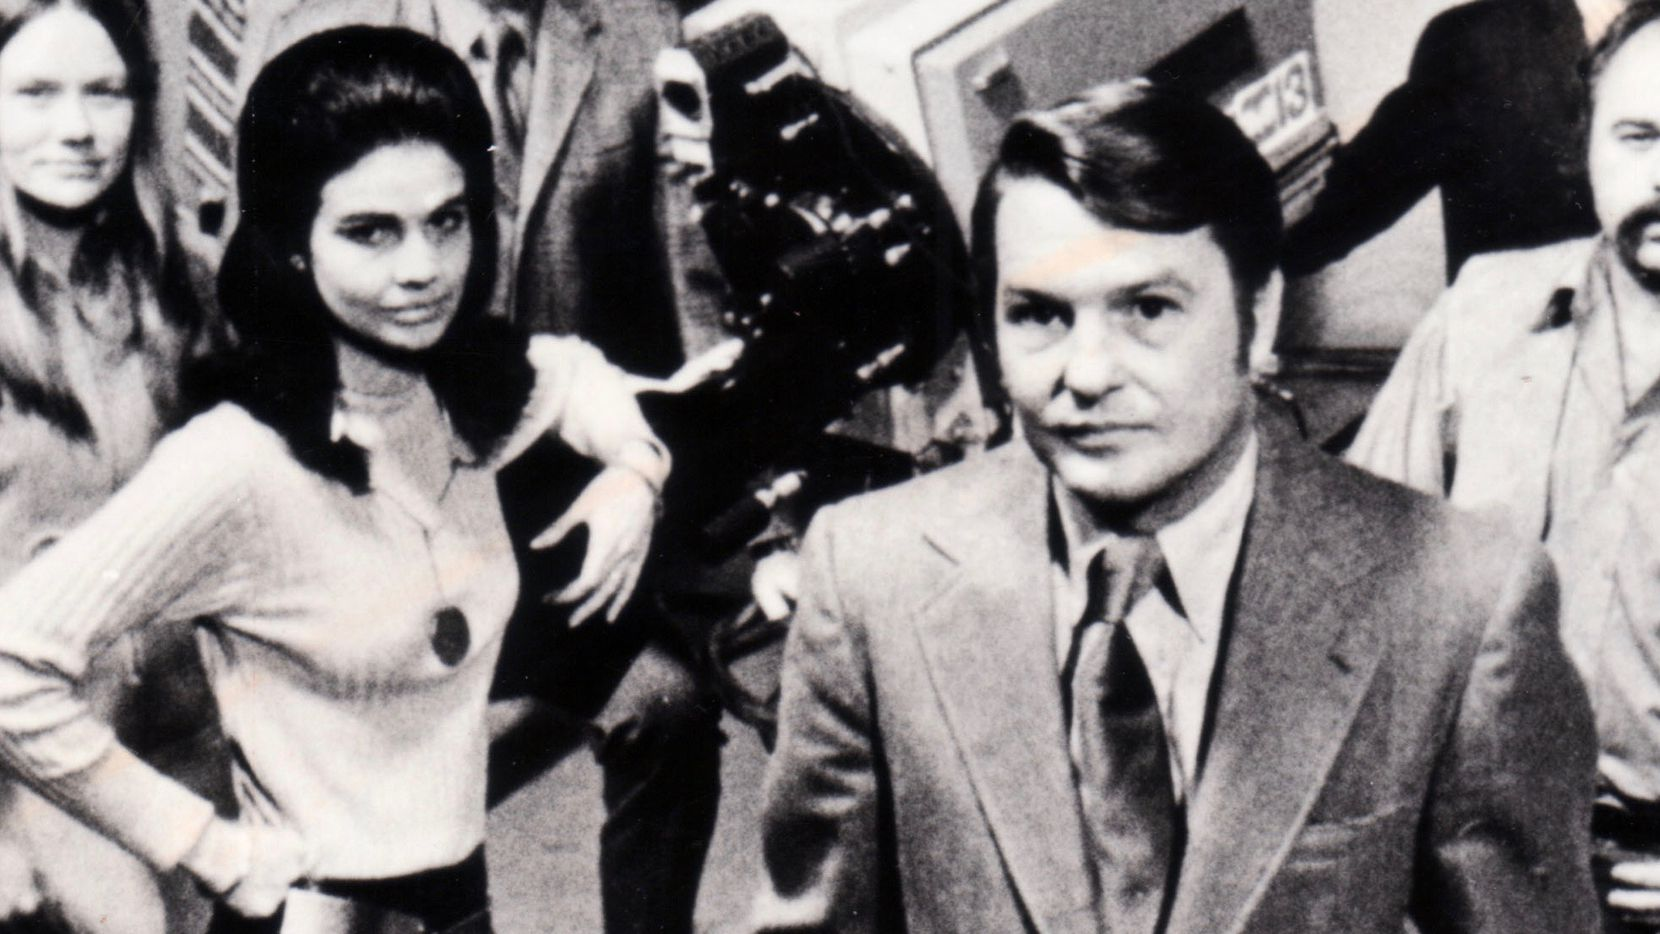 """""""Newsroom,"""" KERA Channel 13's award-winning news program, debuted February 16, 1970, with Jim Lehrer (center) as its editor. Other reporters on the controversial program included Lee Cullum Clark (arm on camera)"""